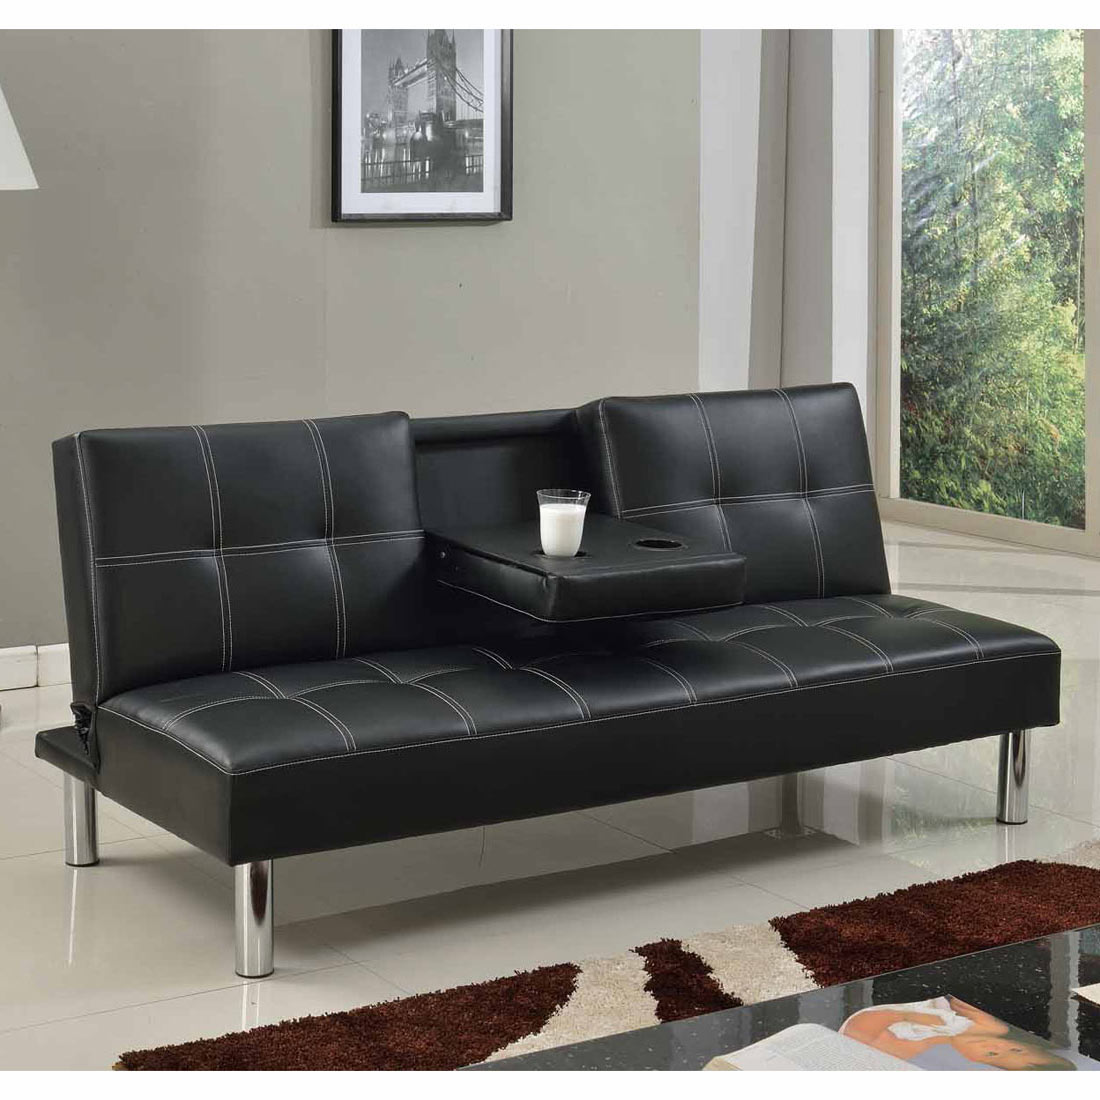 fold down sofa beds uk living room idea cinemo 3 seater bed faux leather w table